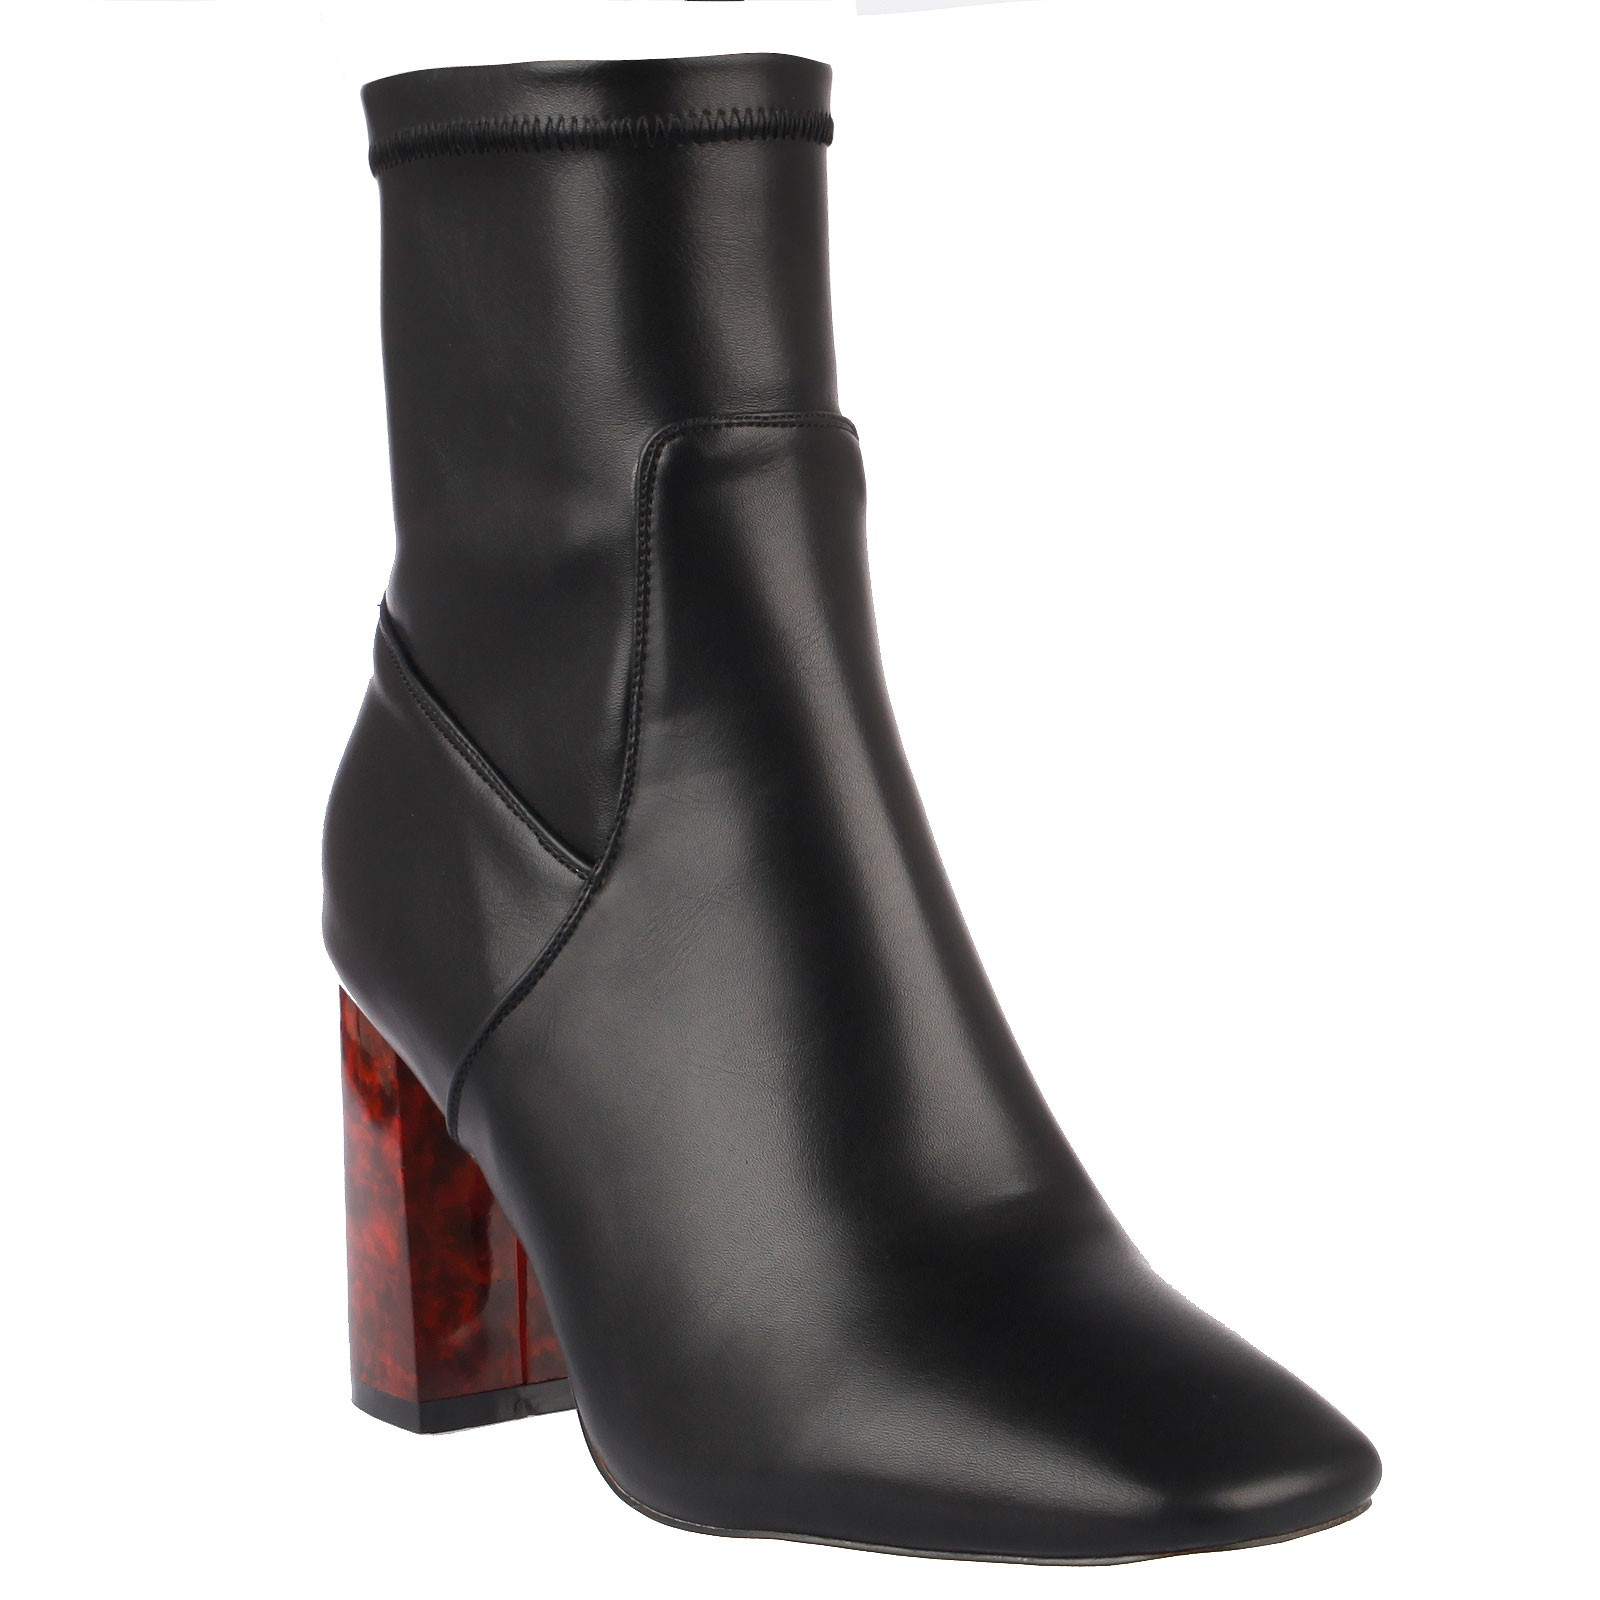 EGO loves the Demi boot. Toirtoishell in heel and differing finishes this is the boot of the season